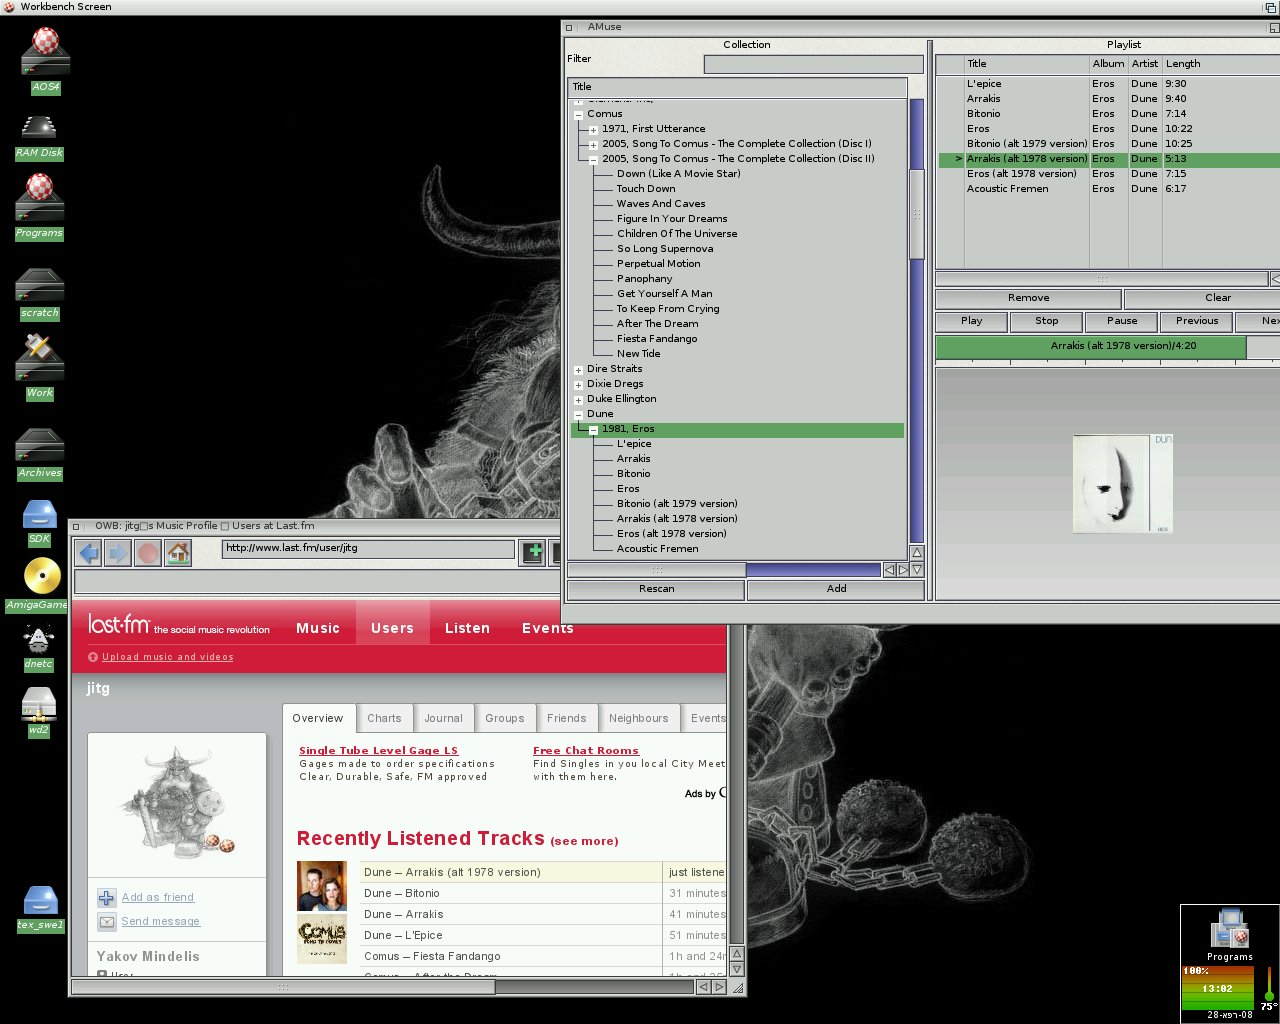 Another screenshot of WIP collection manager with OWB displaying its latest playback stats